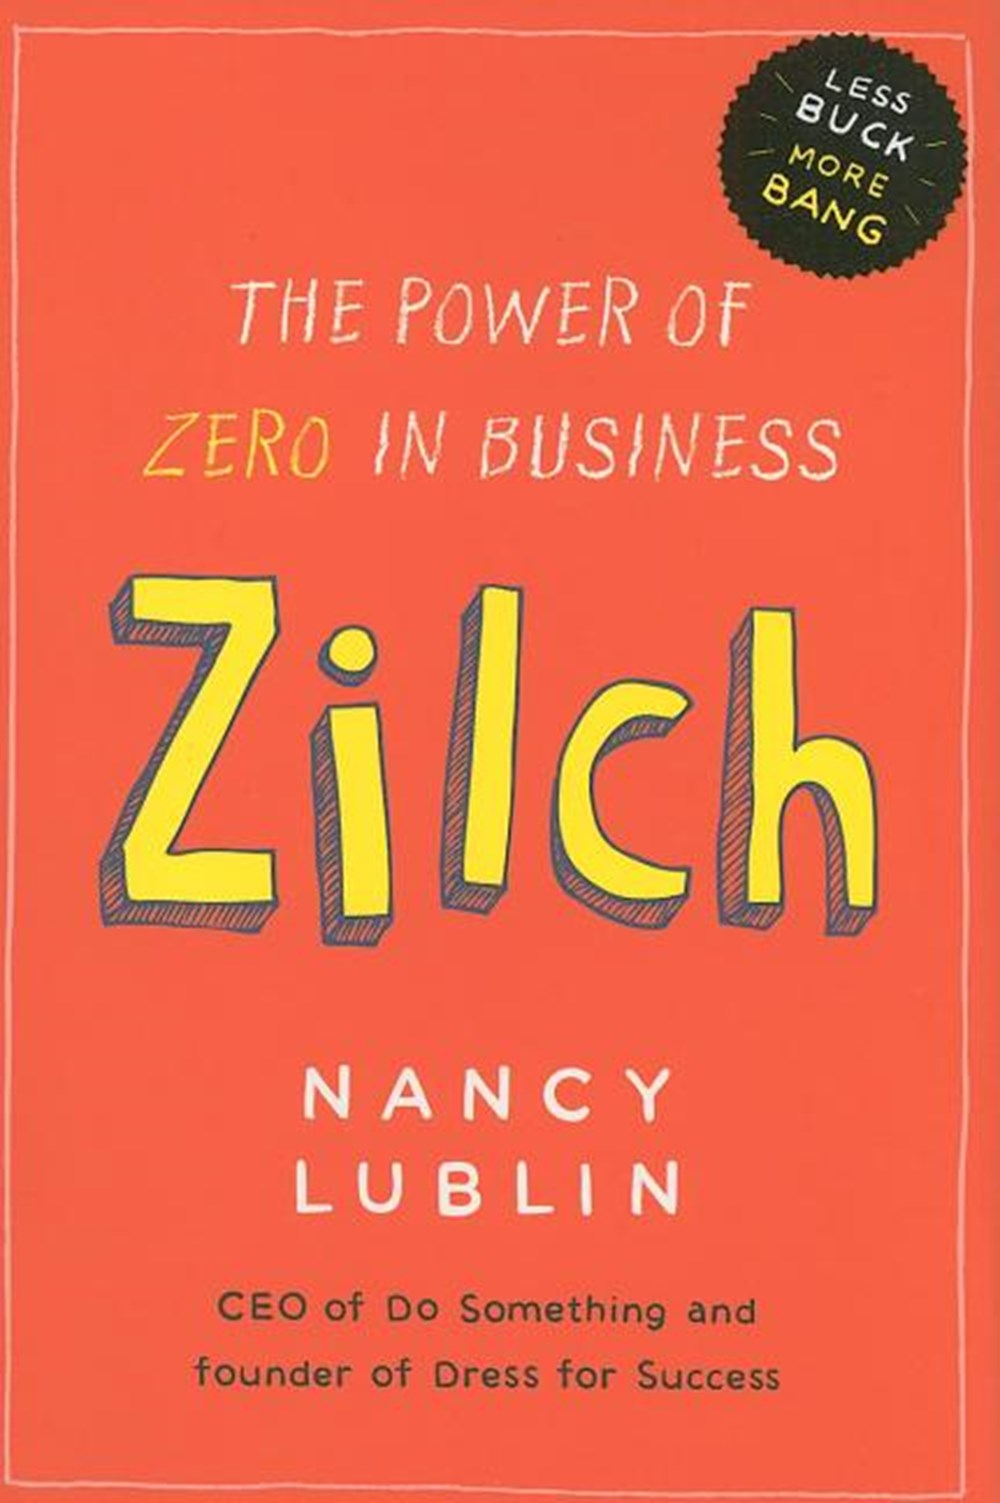 Zilch The Power of Zero in Business